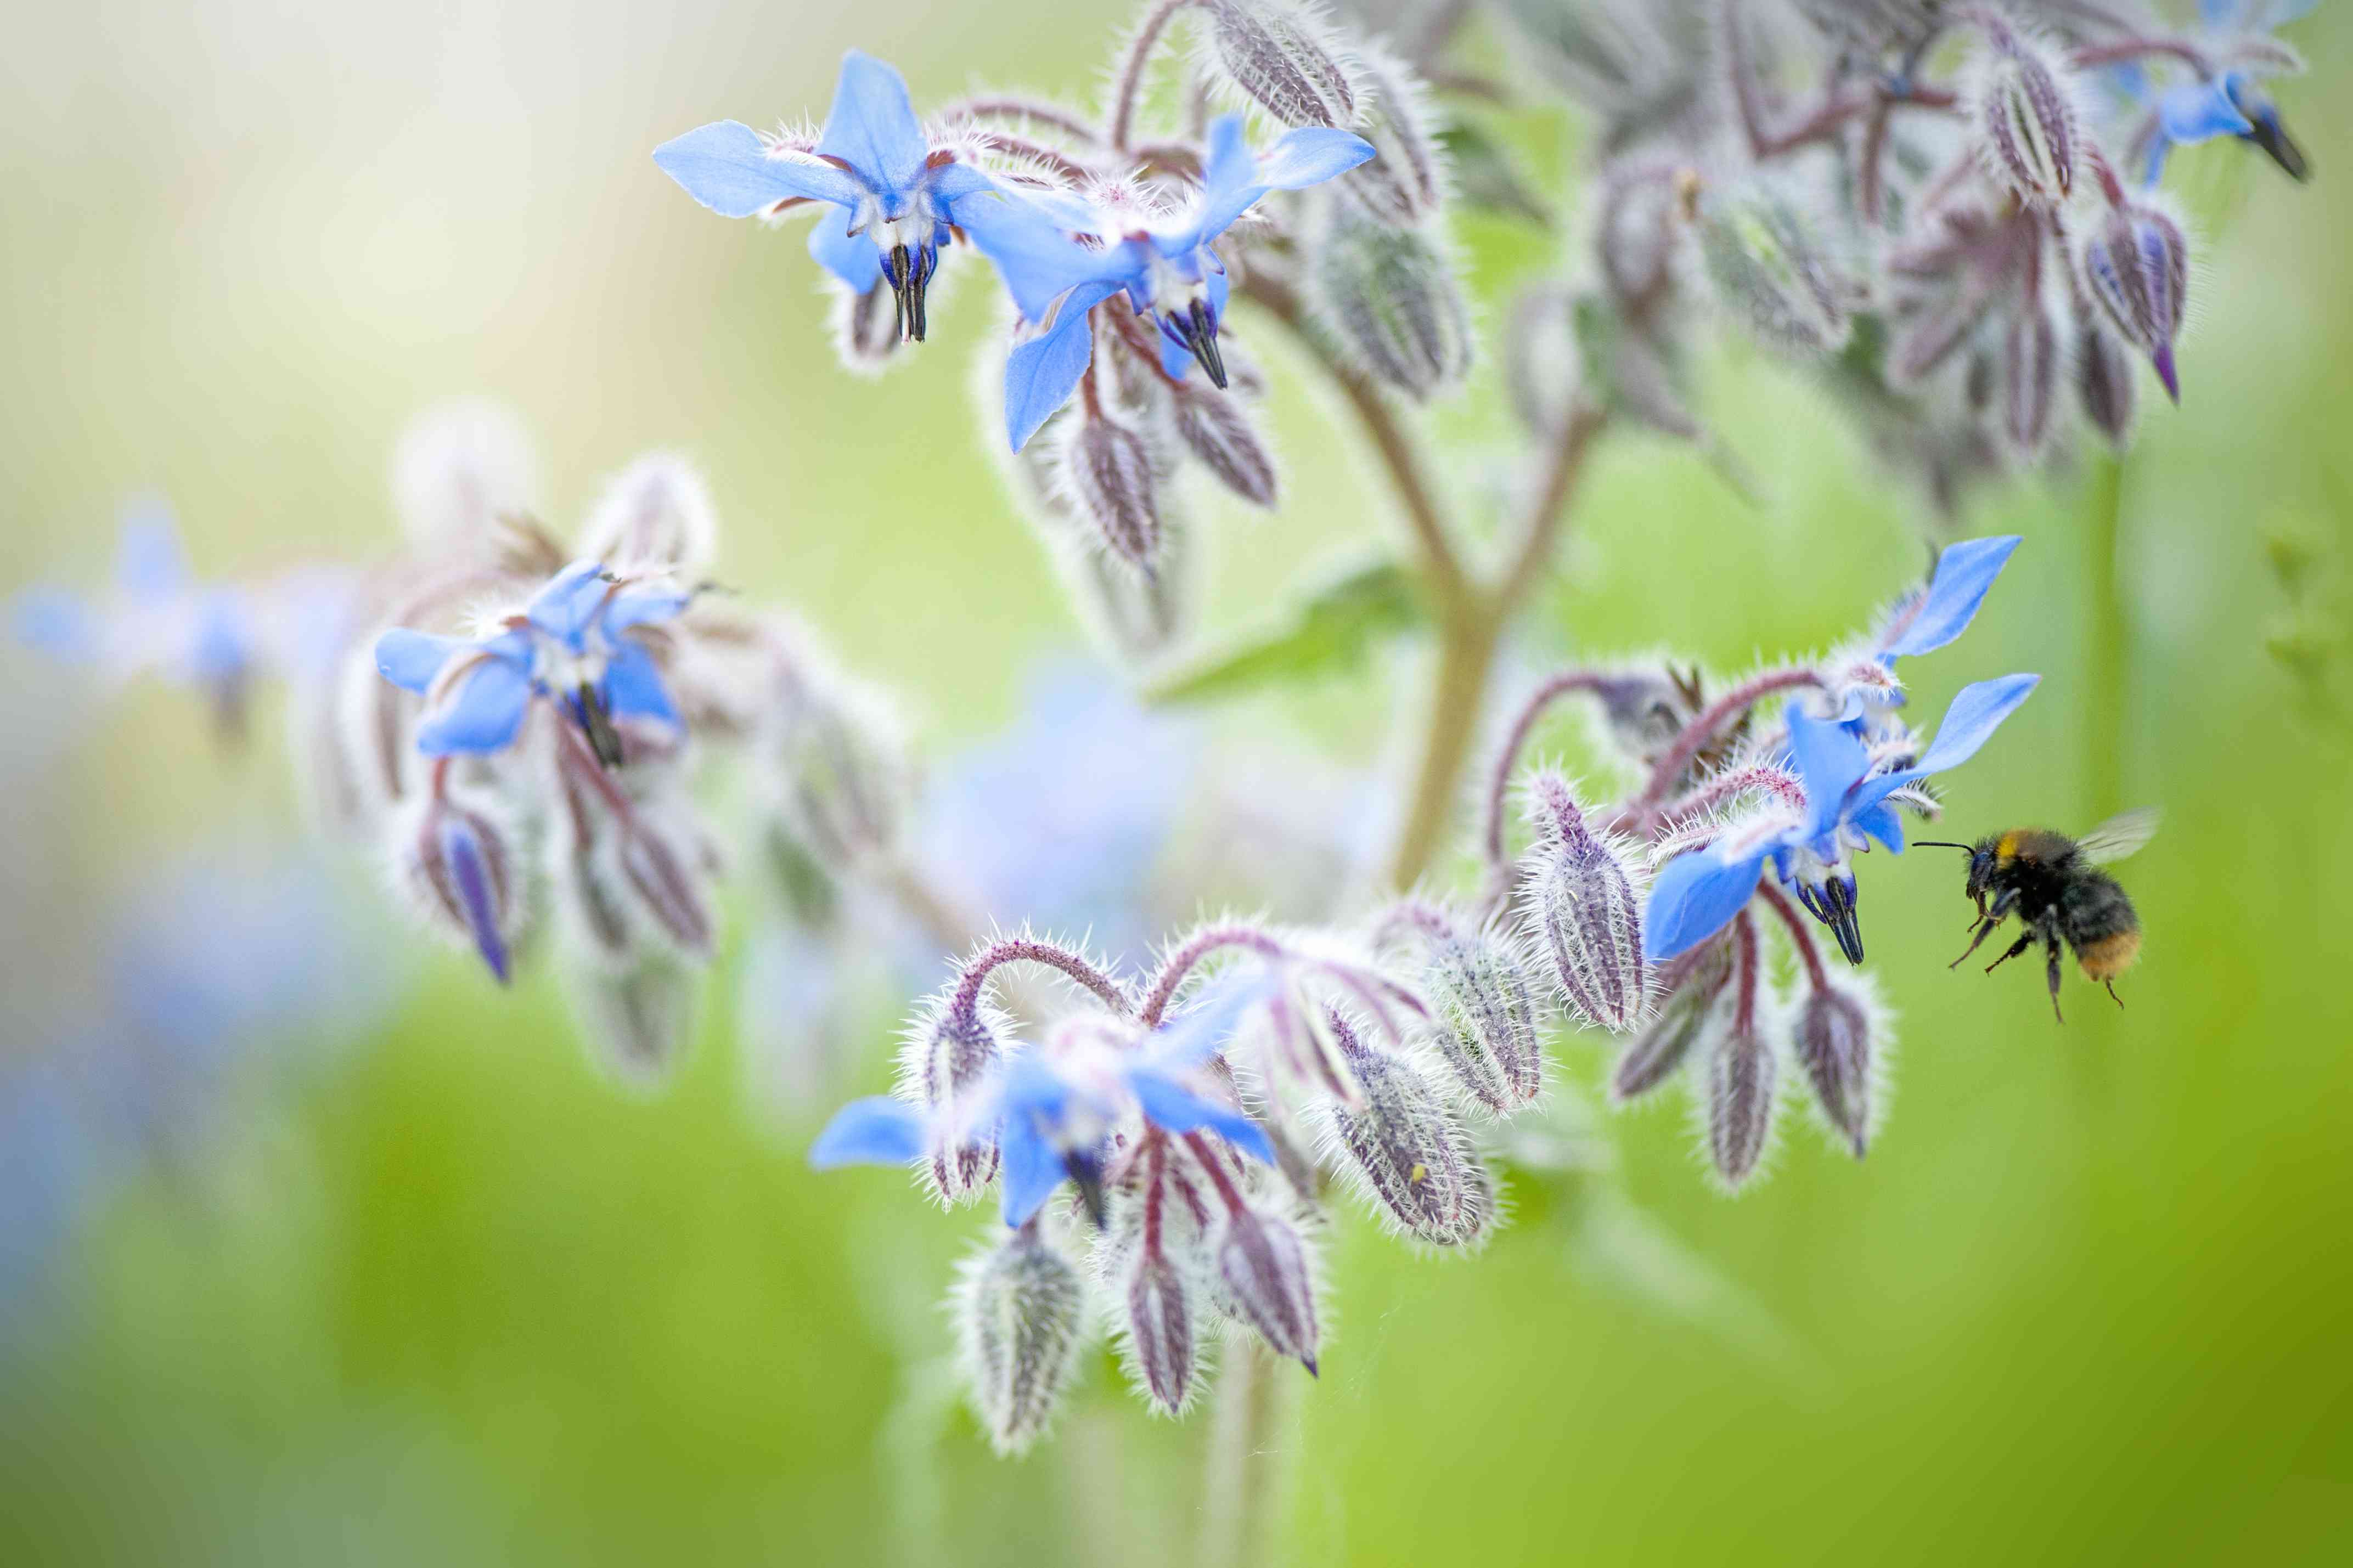 Close-up image of Borage blue flowers - Borago officinalis, also known as a starflower with a bee